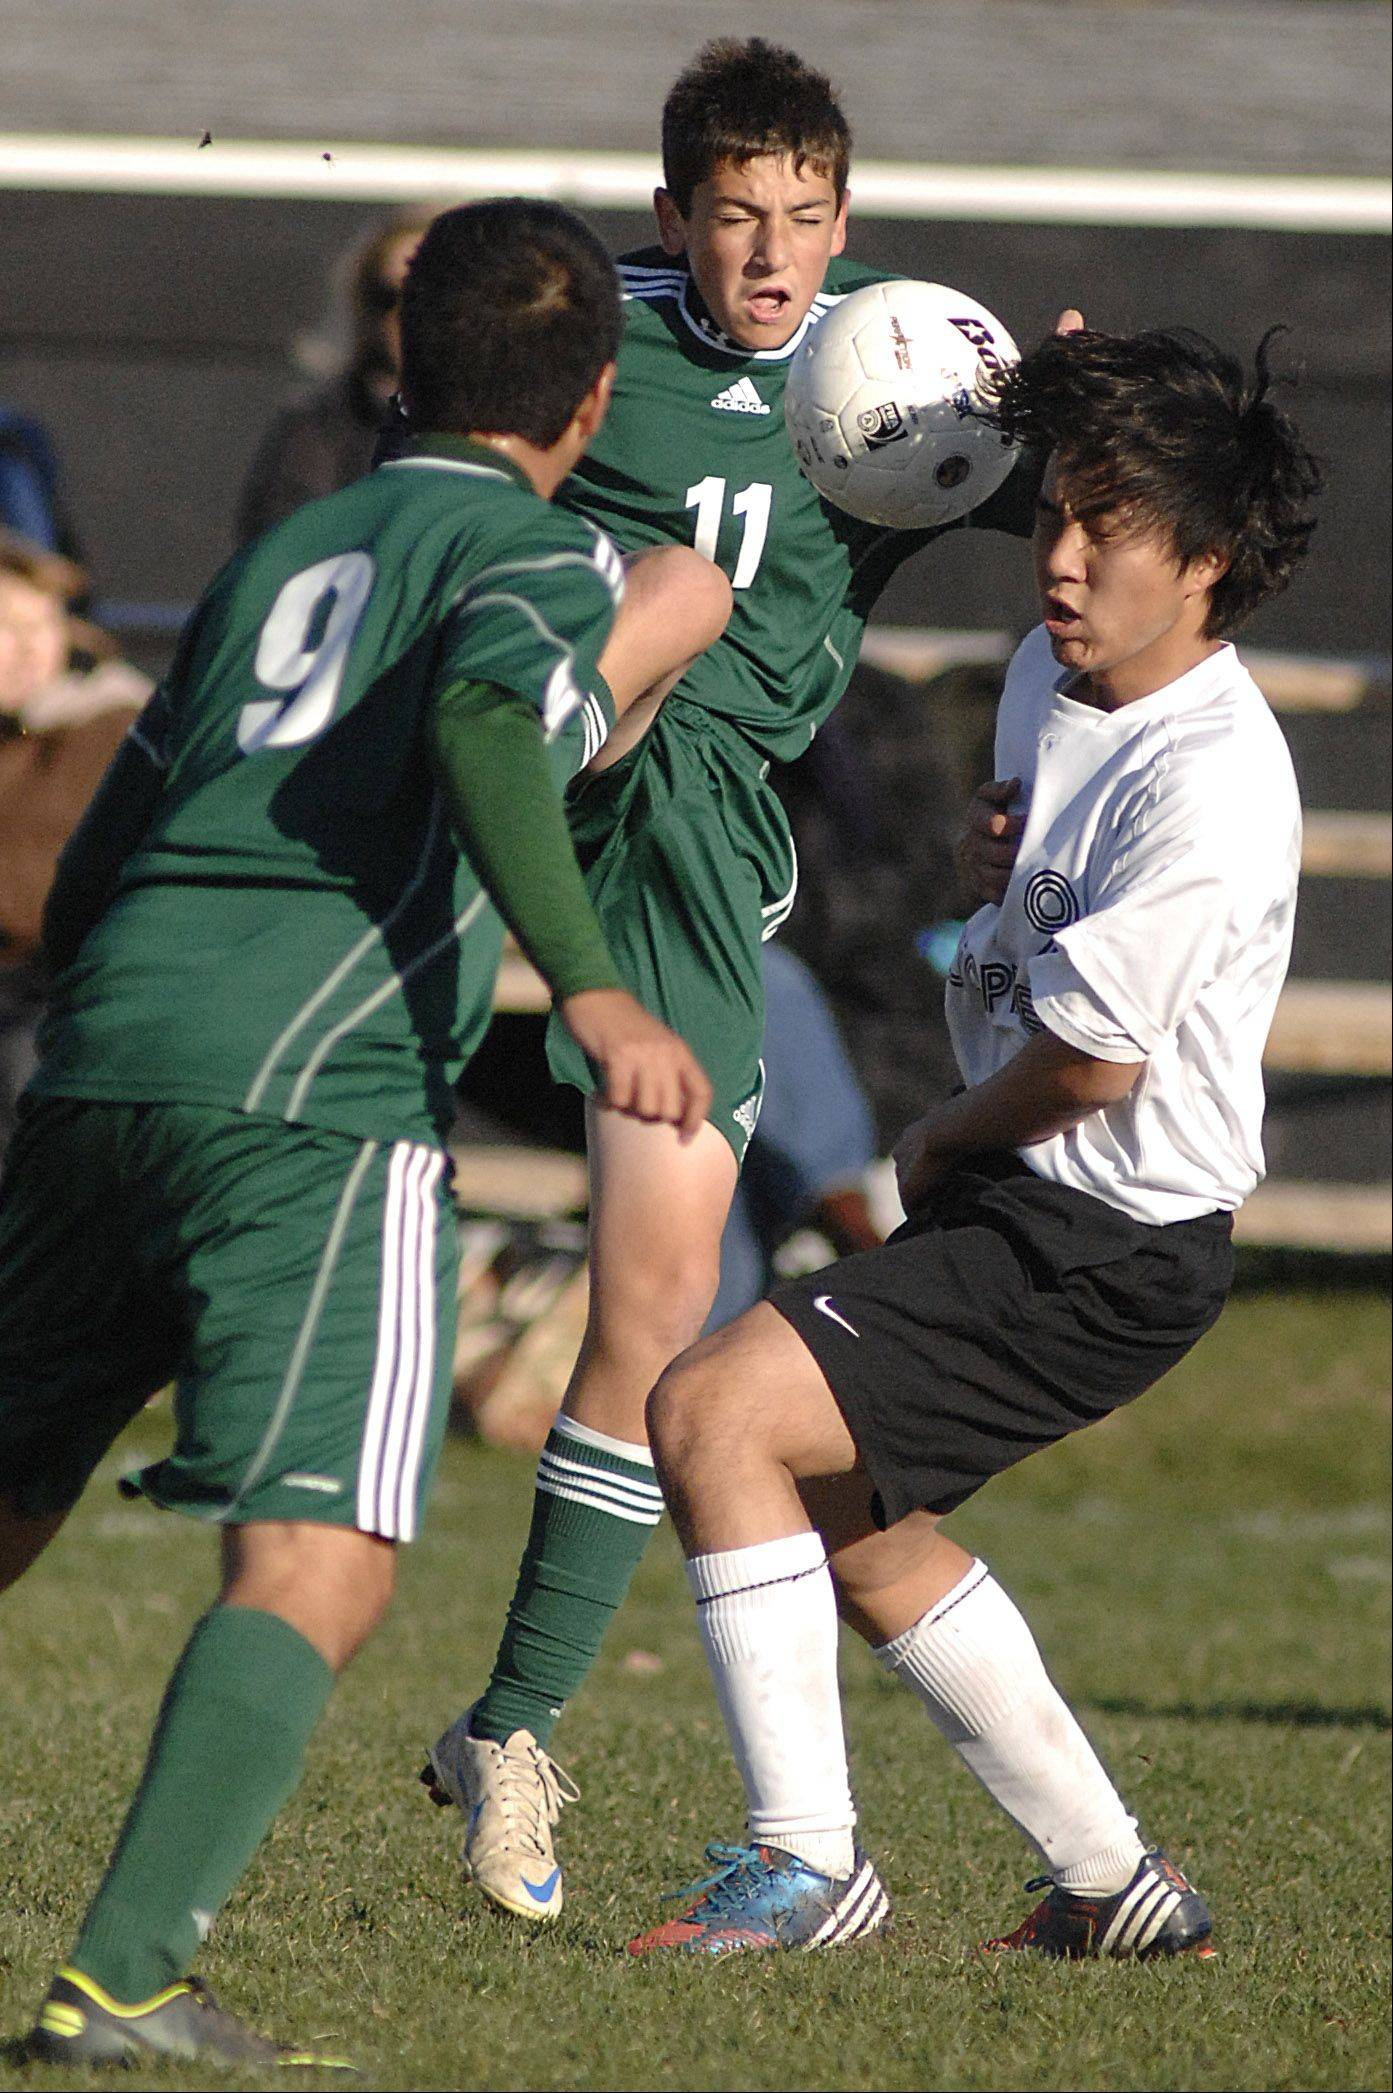 St. Edward's Austin Pfeiffer collides with Elgin Academy's Tano Xayasarn in the first half on Wednesday, October 10.